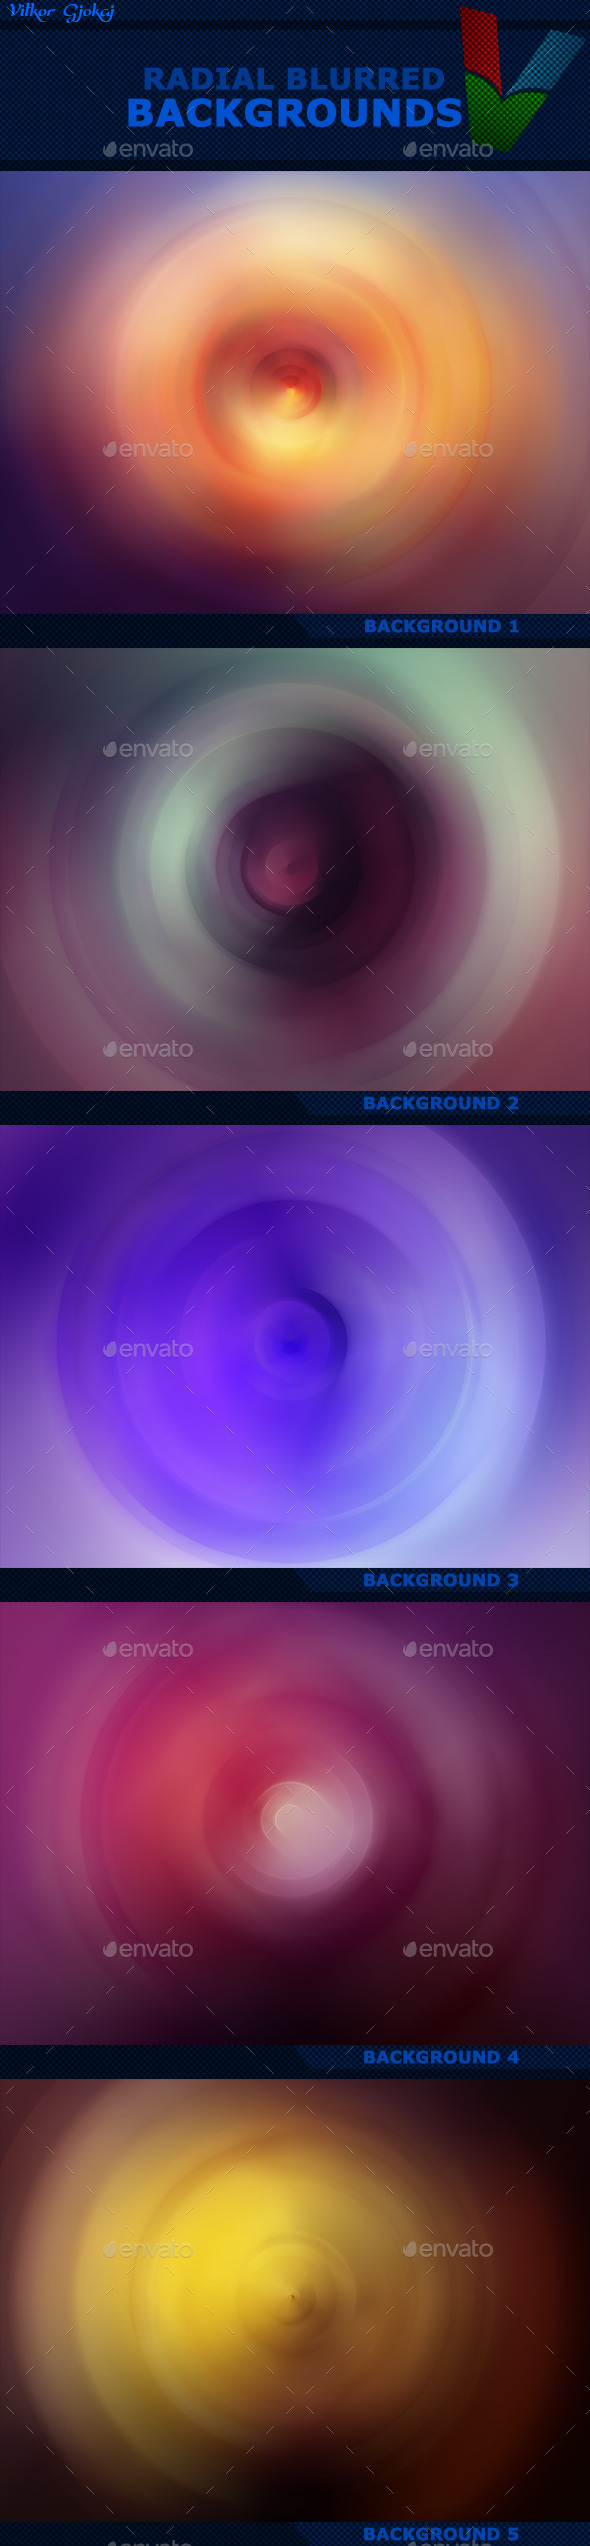 Radial Blurred Backgrounds - Abstract Backgrounds